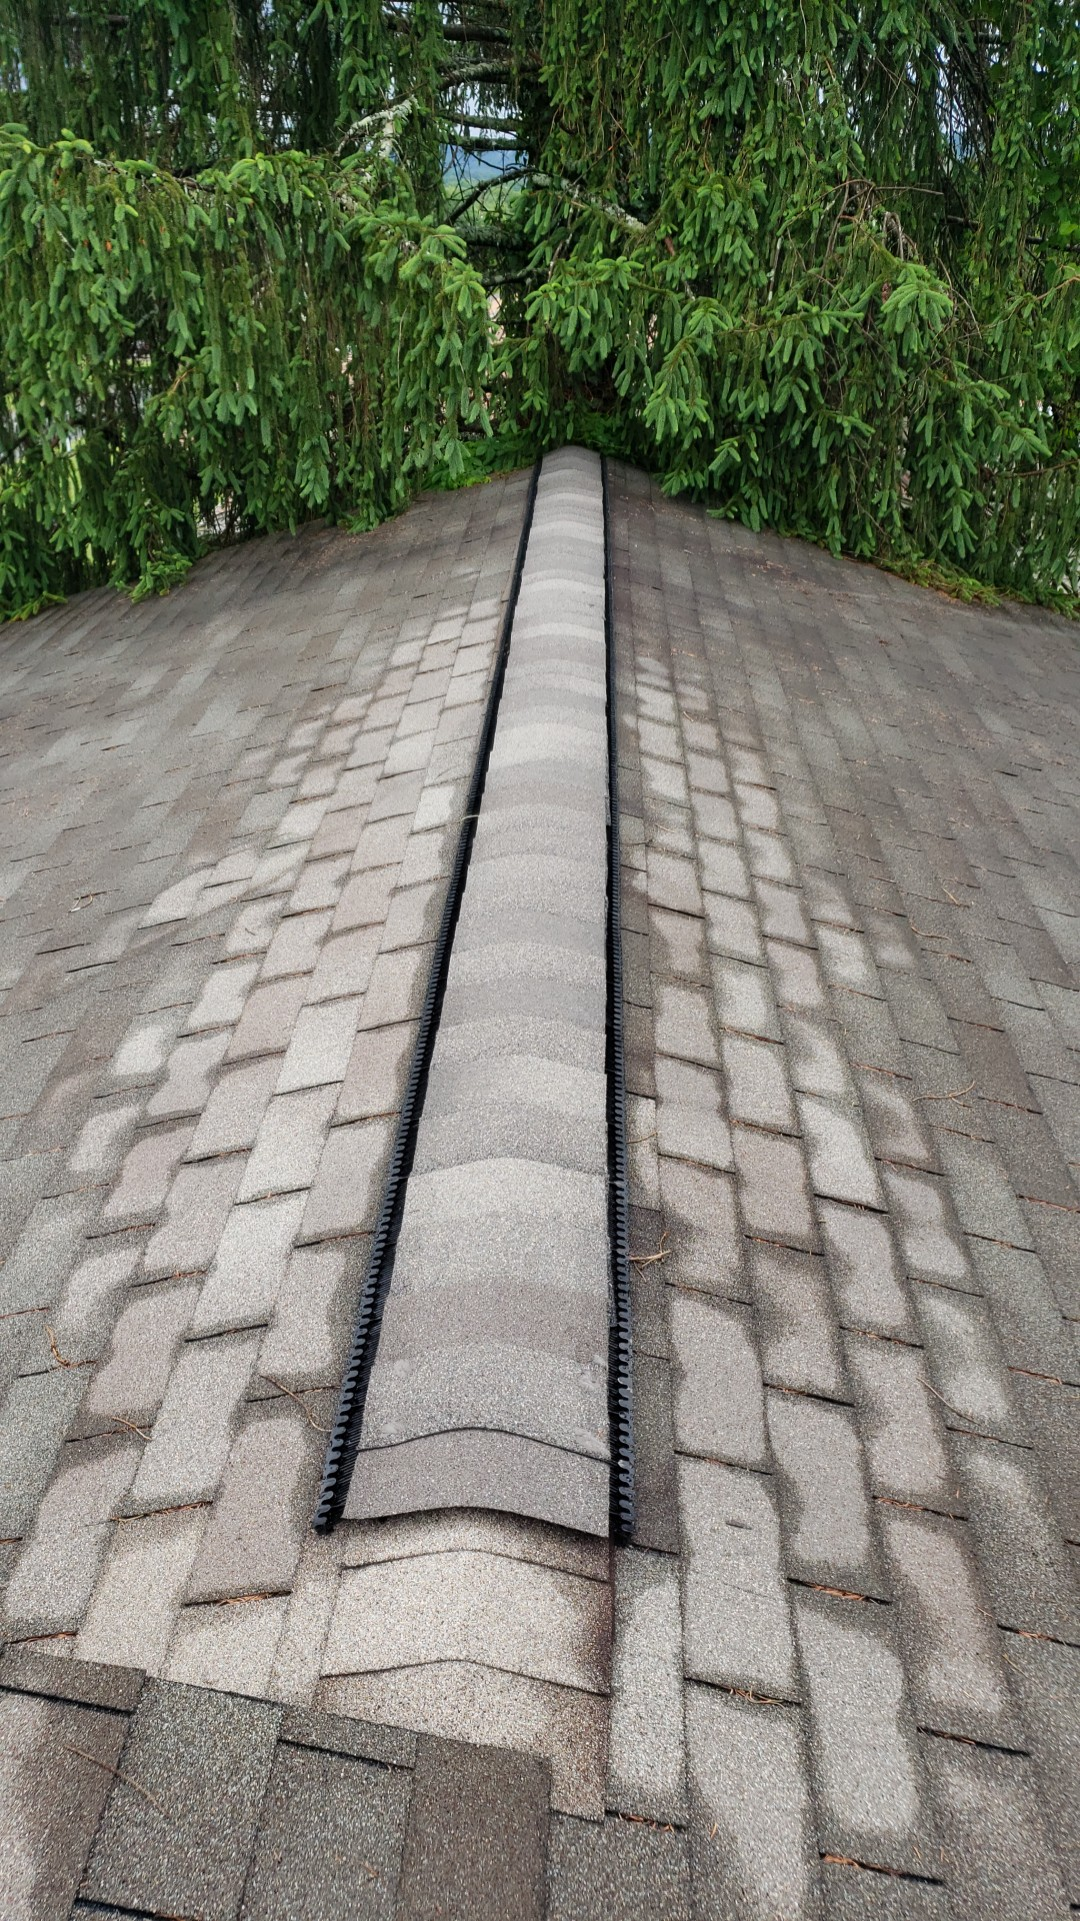 This is a picture of the ridge of the roof with gray shingles.